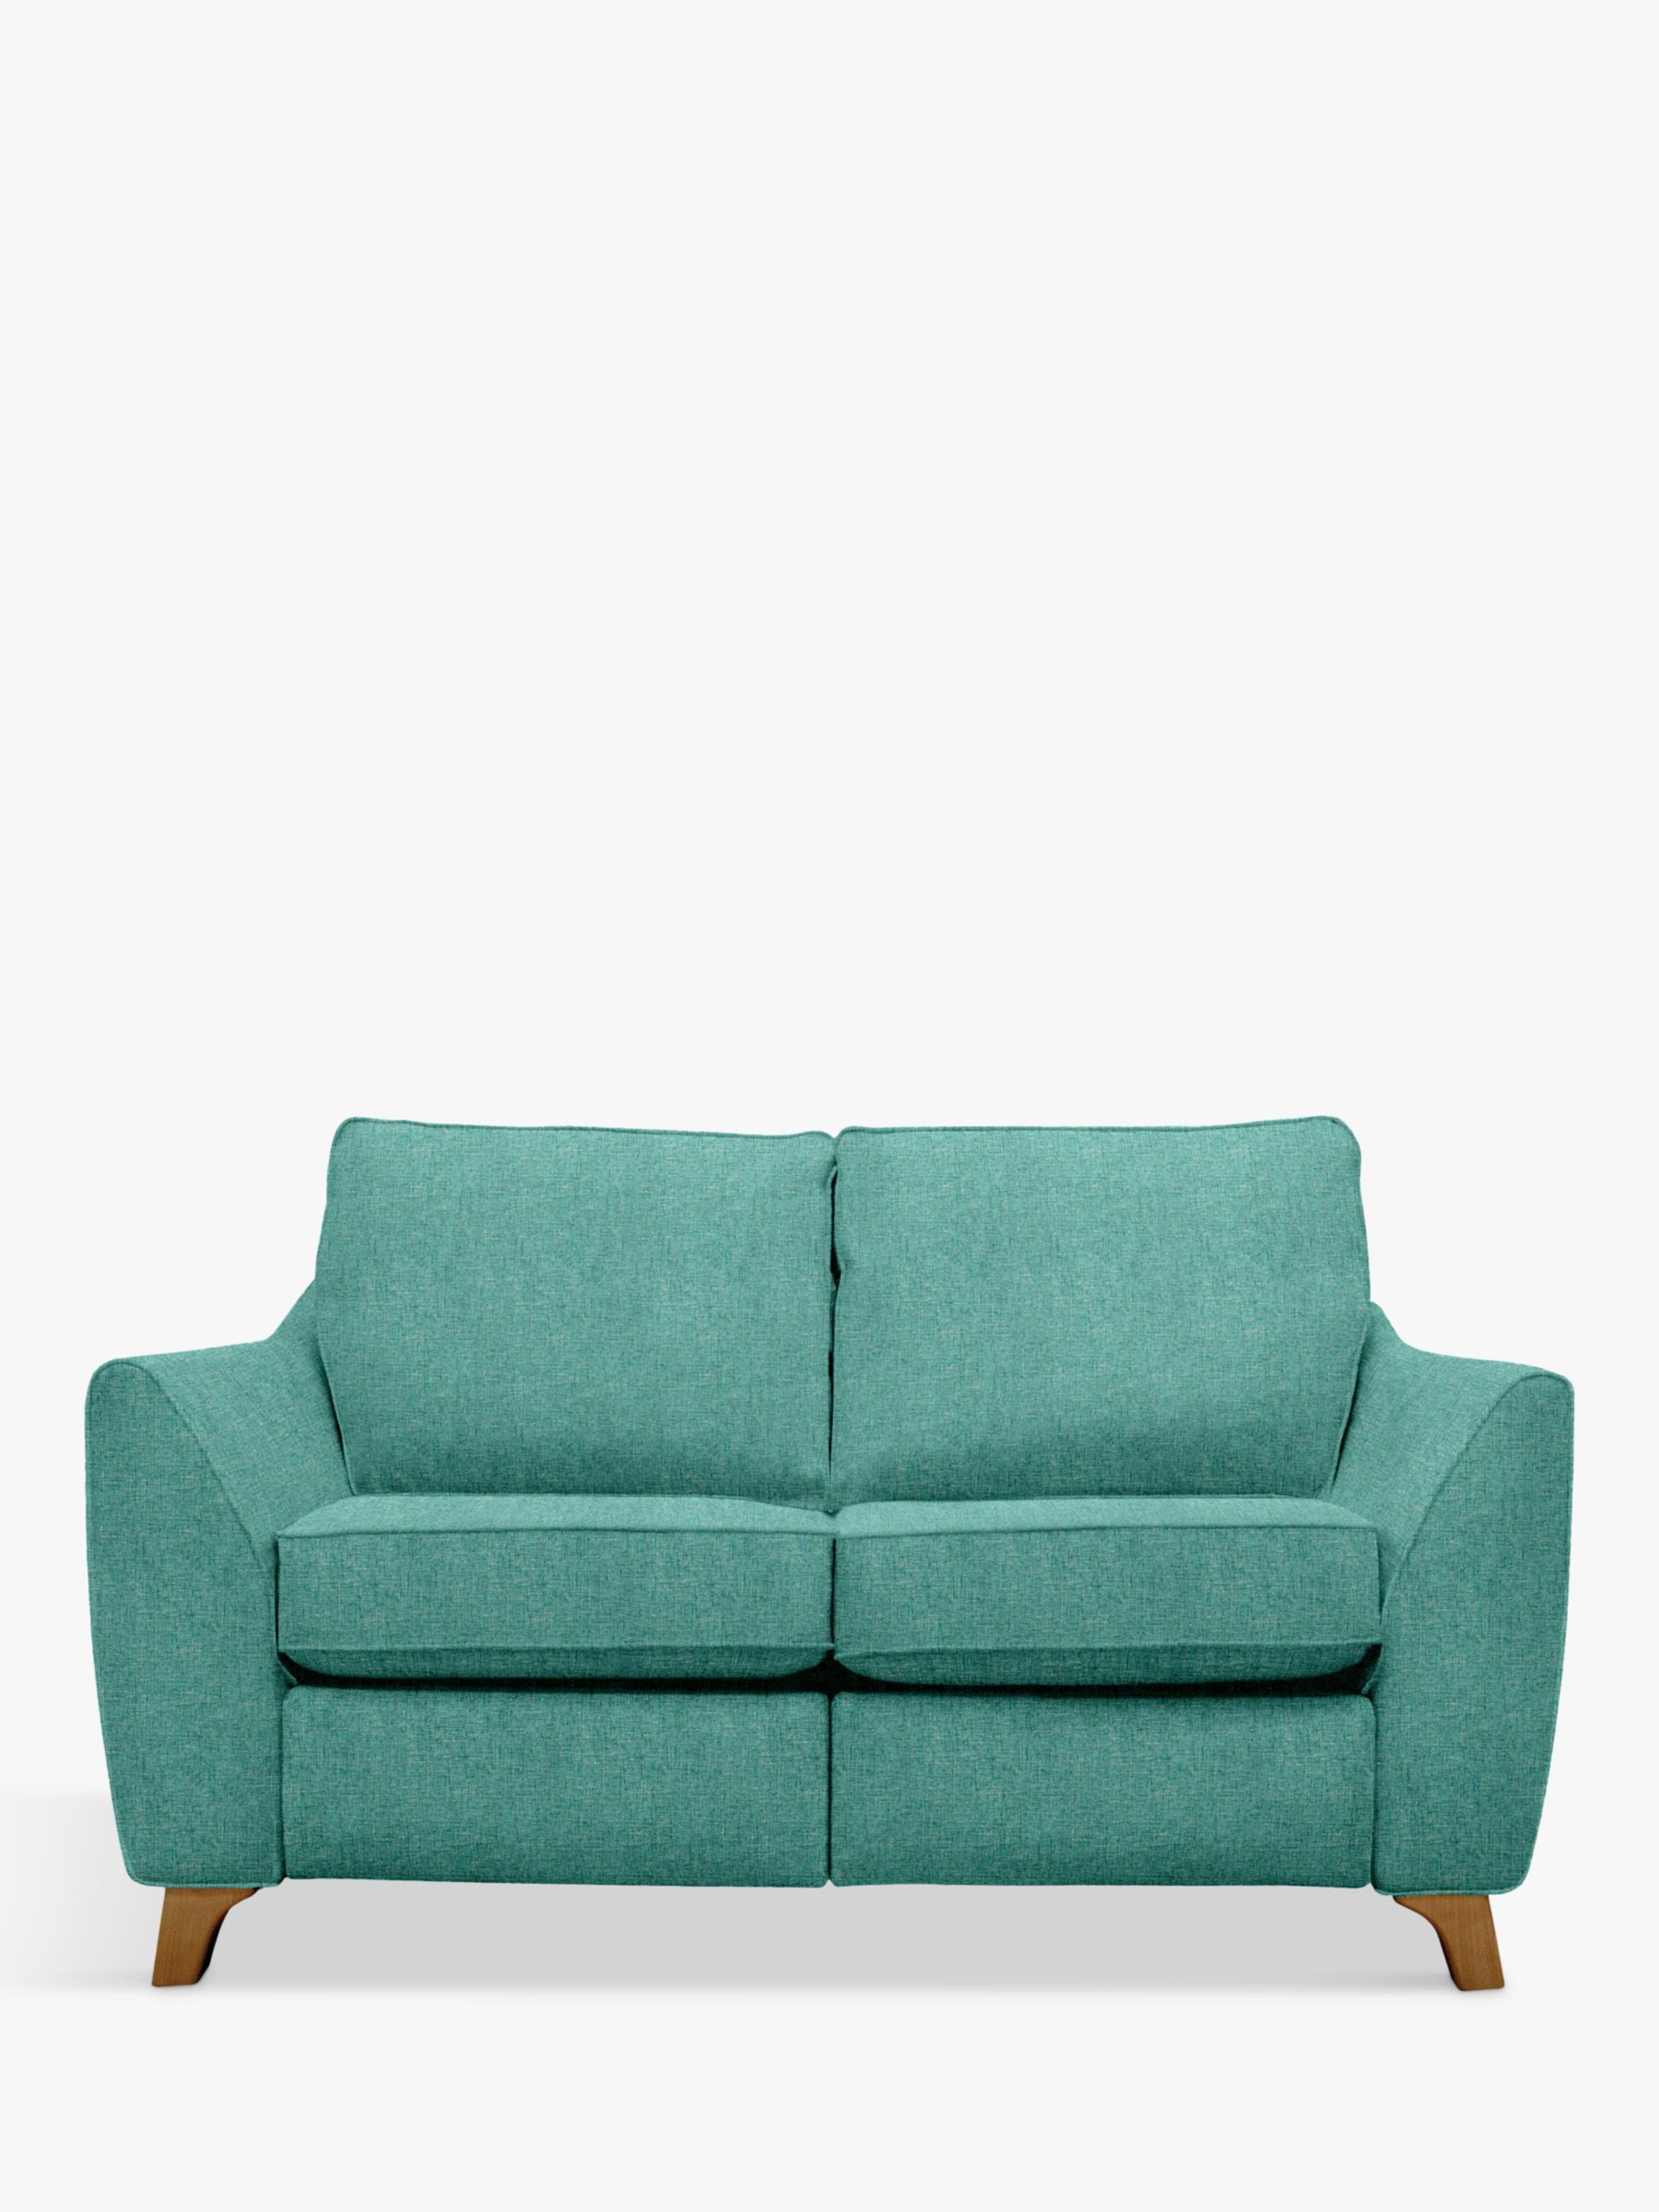 G Plan Vintage G Plan Vintage The Sixty Eight Small 2 Seater Sofa with Footrest Mechanism